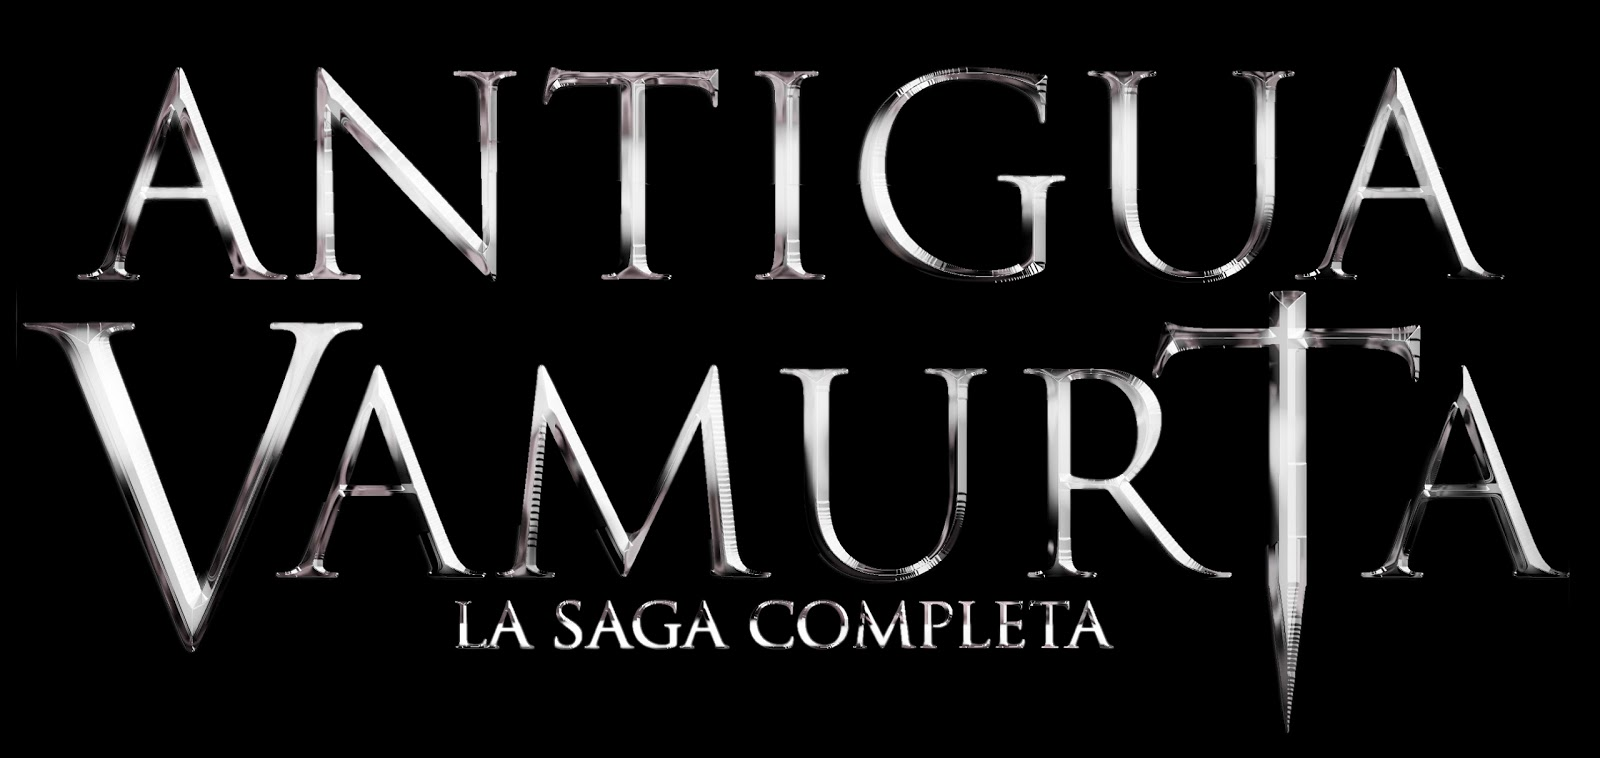 Descargar Gratis Libros Kindle Antigua Vamurta Guerras De Antigua Vamurta Para Ebooks